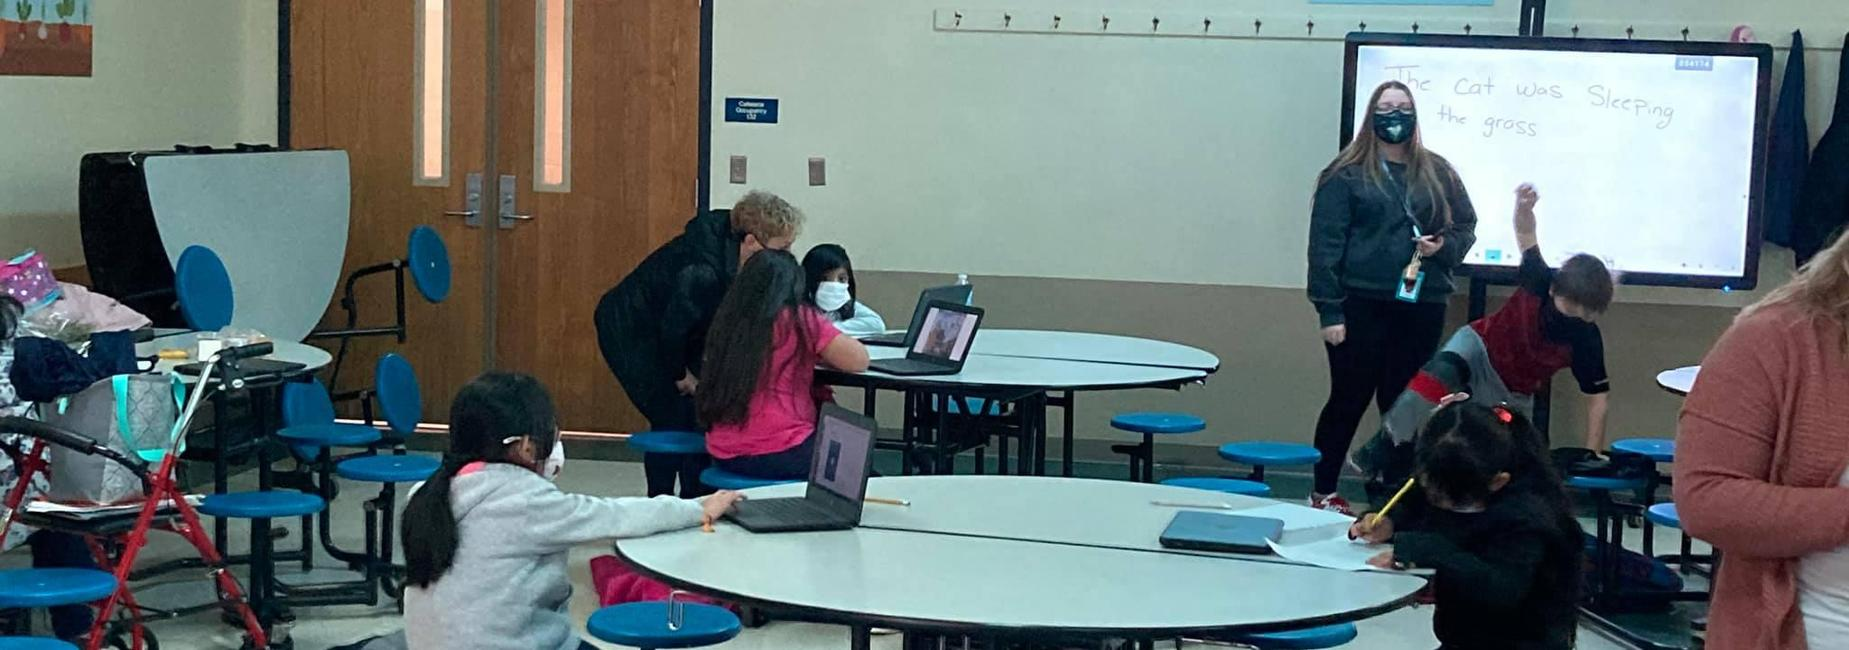 eLearning support for Starr Elementary School students